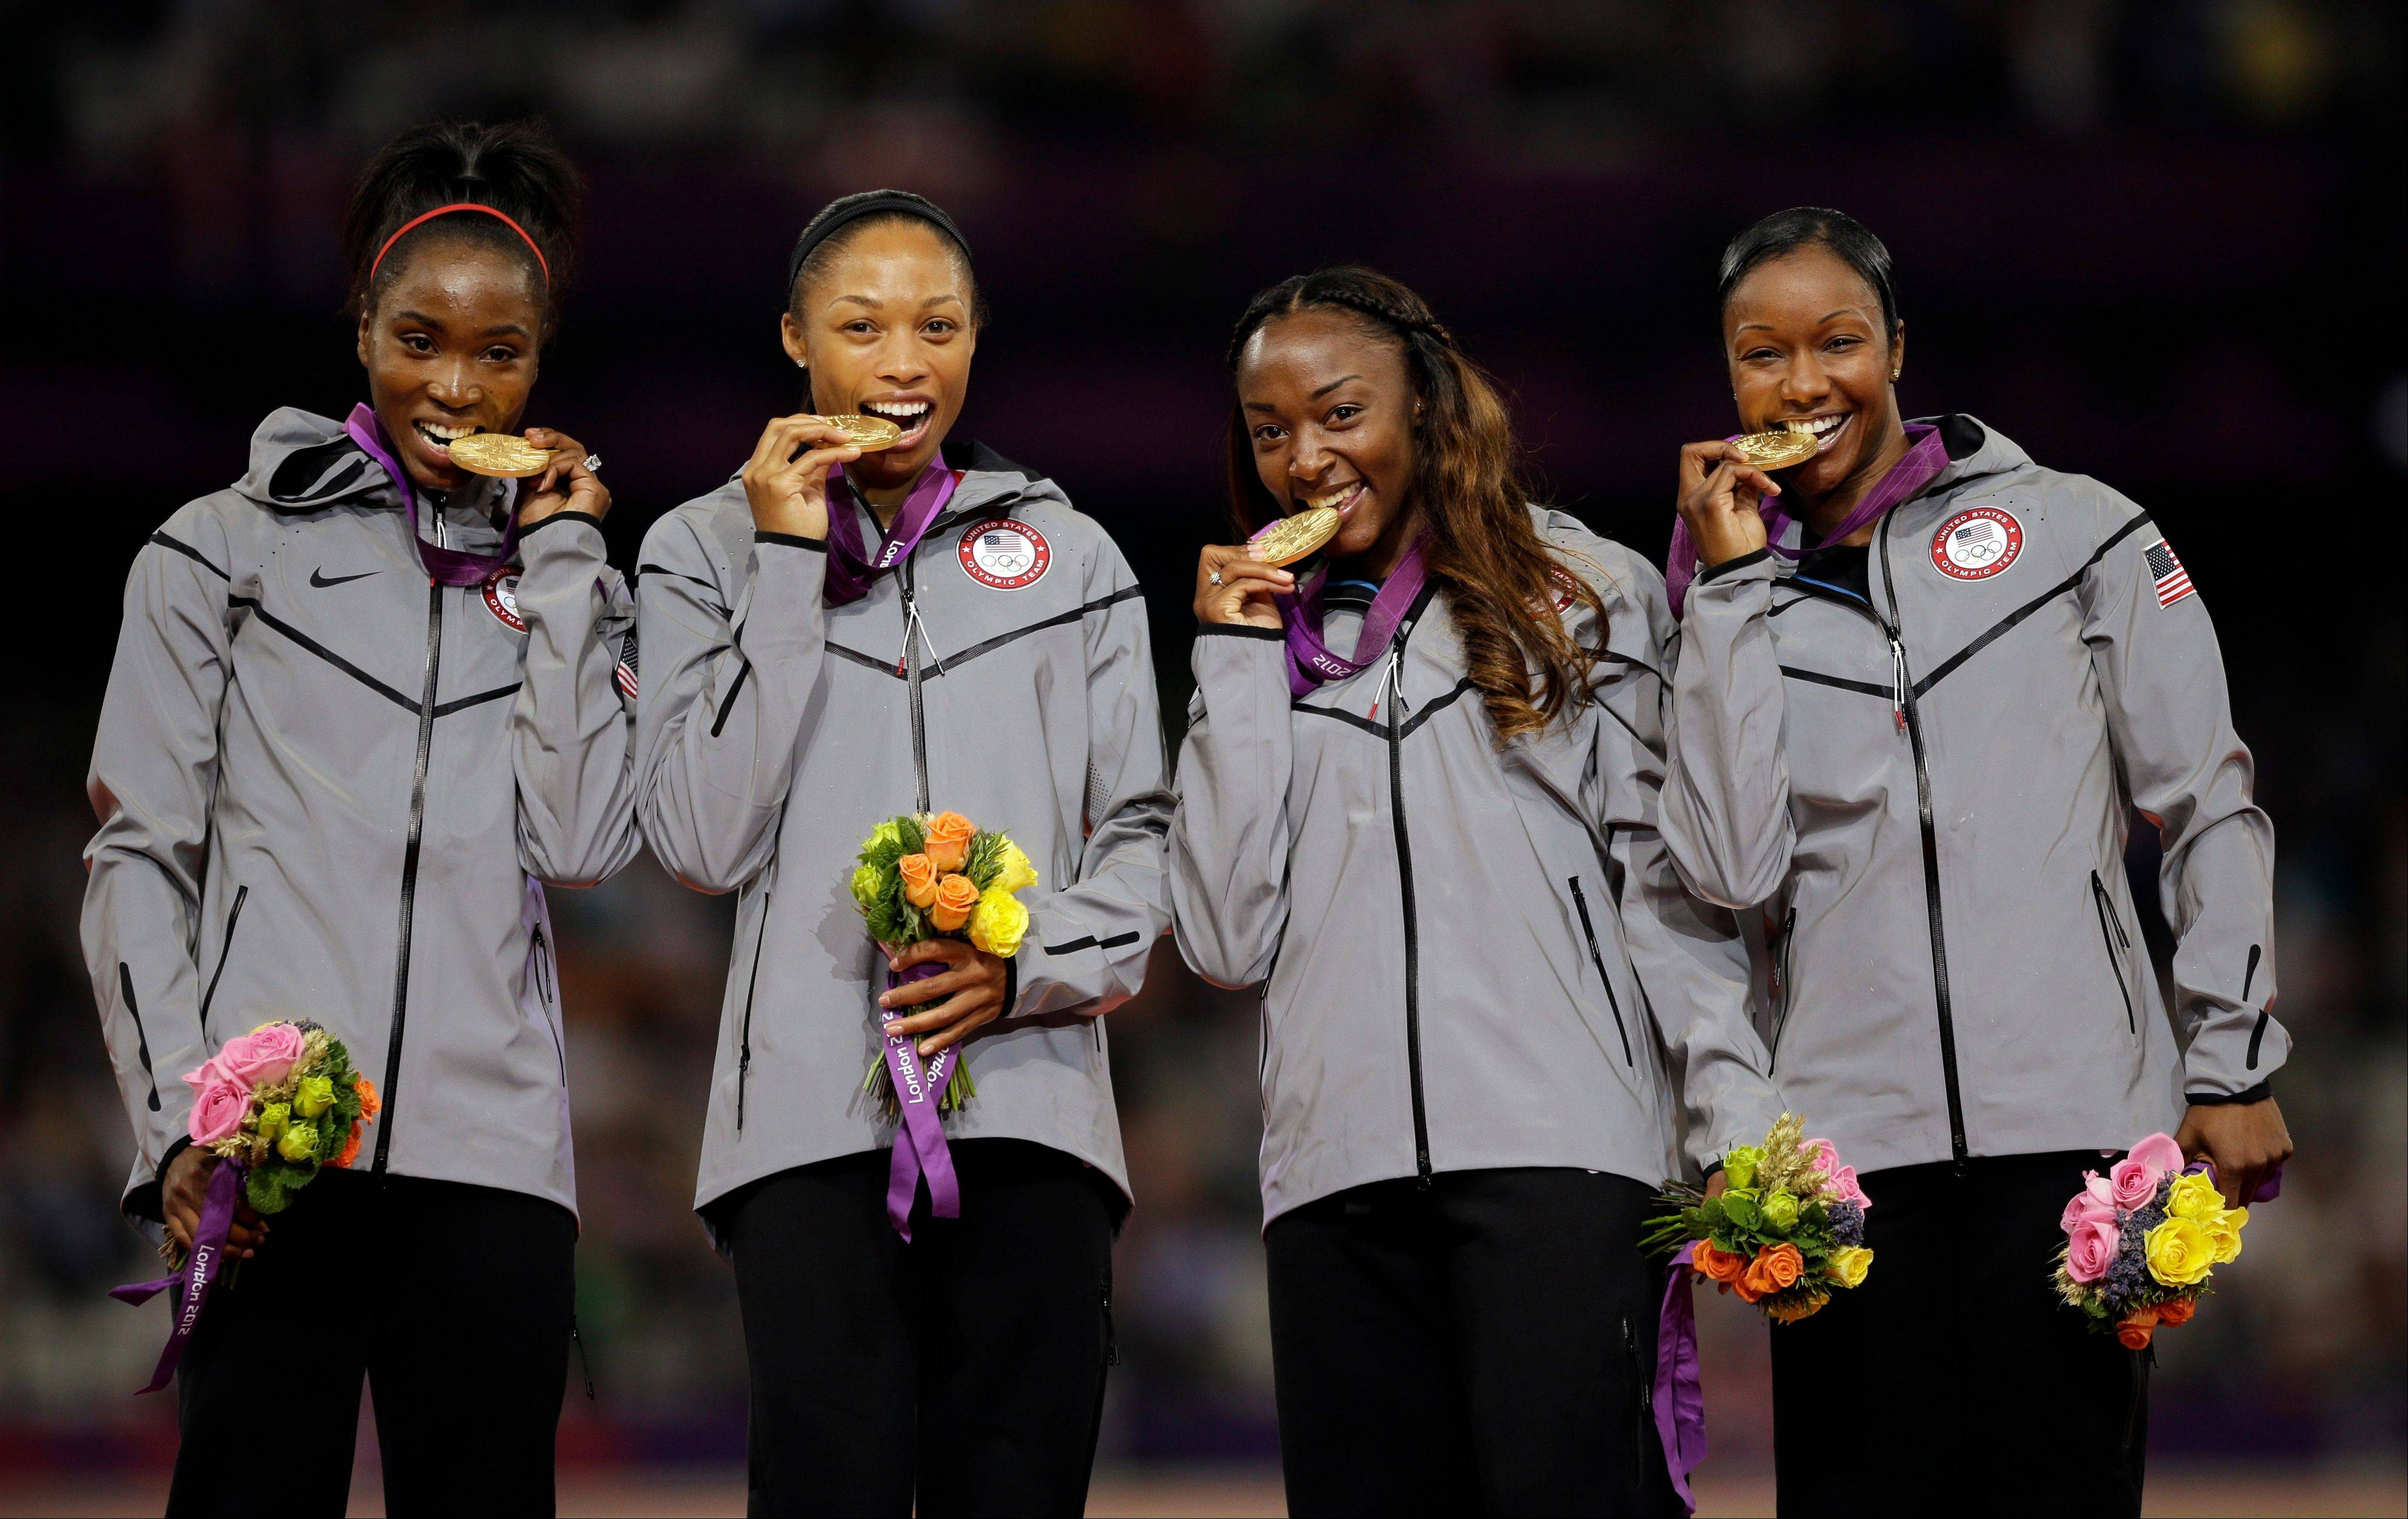 USA sprinters Tianna Madison, Allyson Felix, Bianca Knight and Carmelita Jeter celebrate their gold medal win Friday. Midway through Friday's events, the Americans led China in total medals, 90 to 81, and golds, 40 to 37.